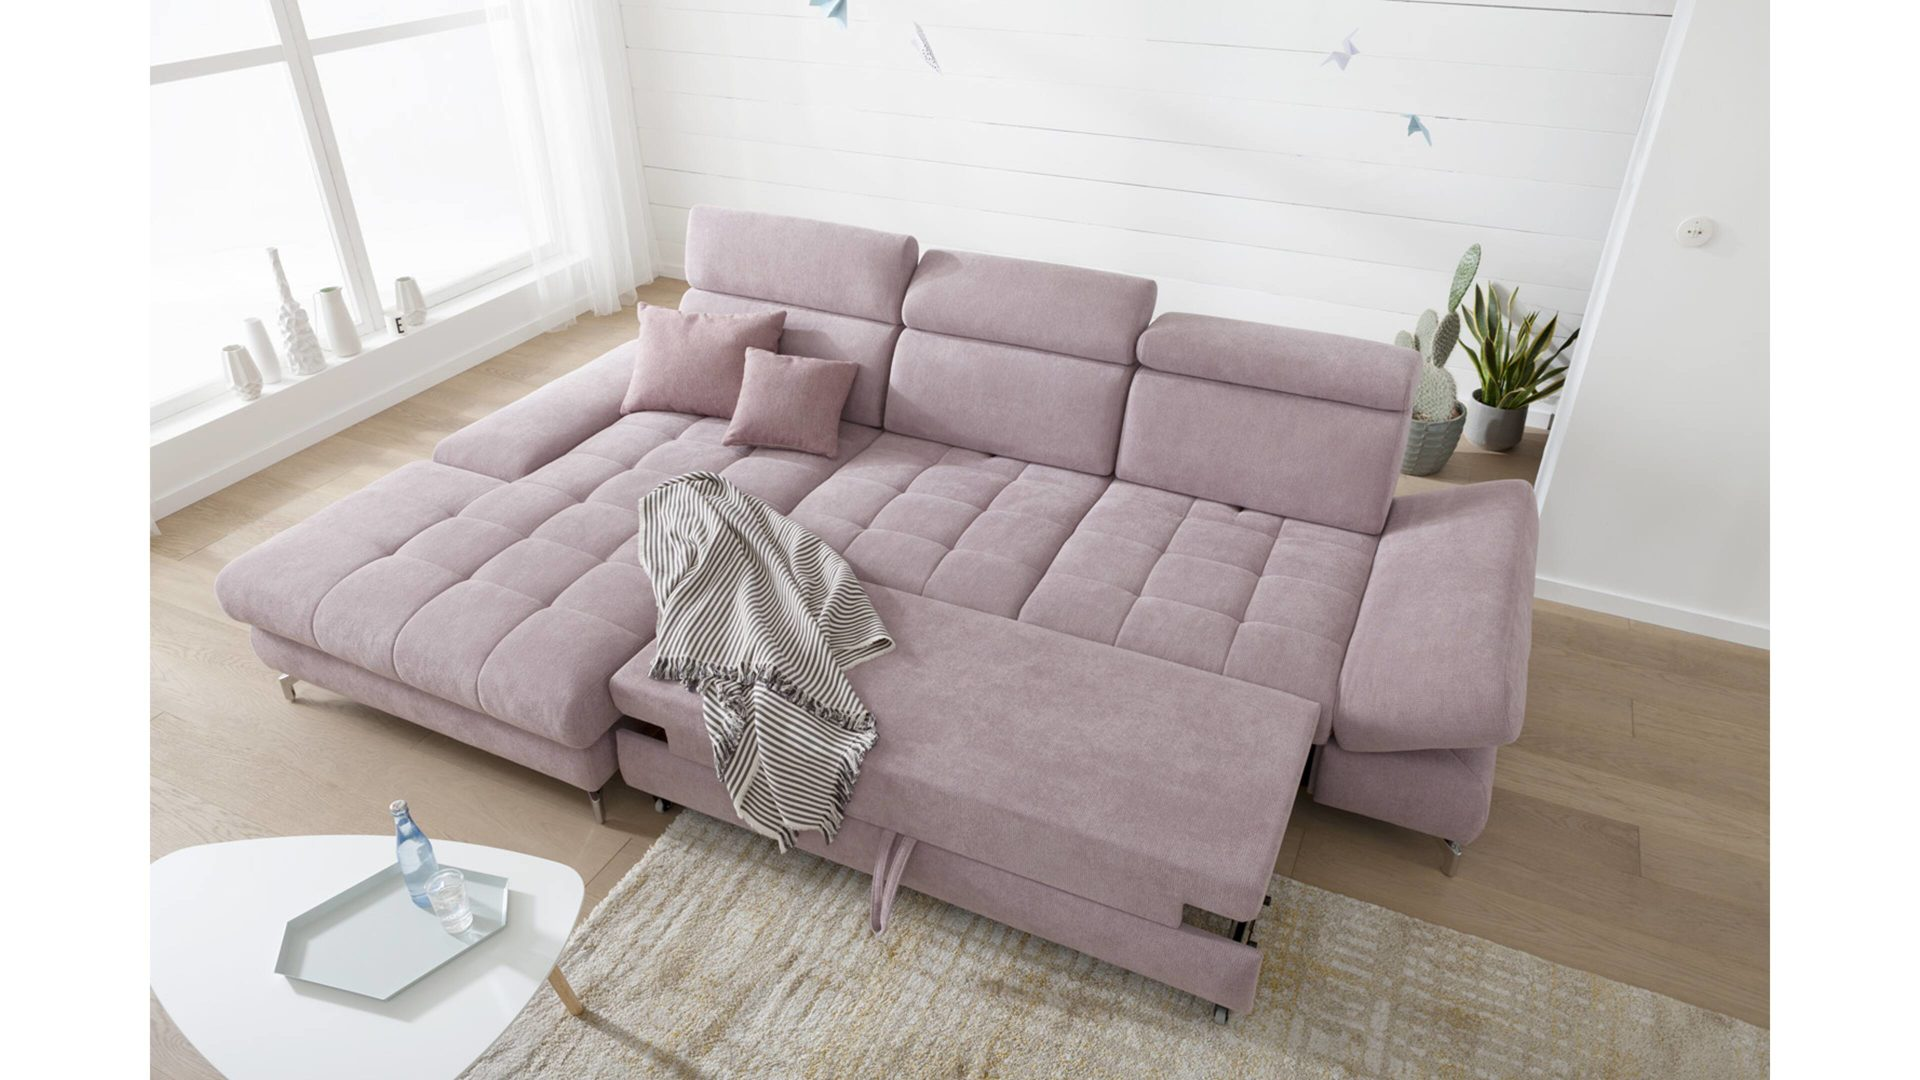 Mobel Eilers Apen Mobel A Z Couches Sofas Kawoo Kawoo